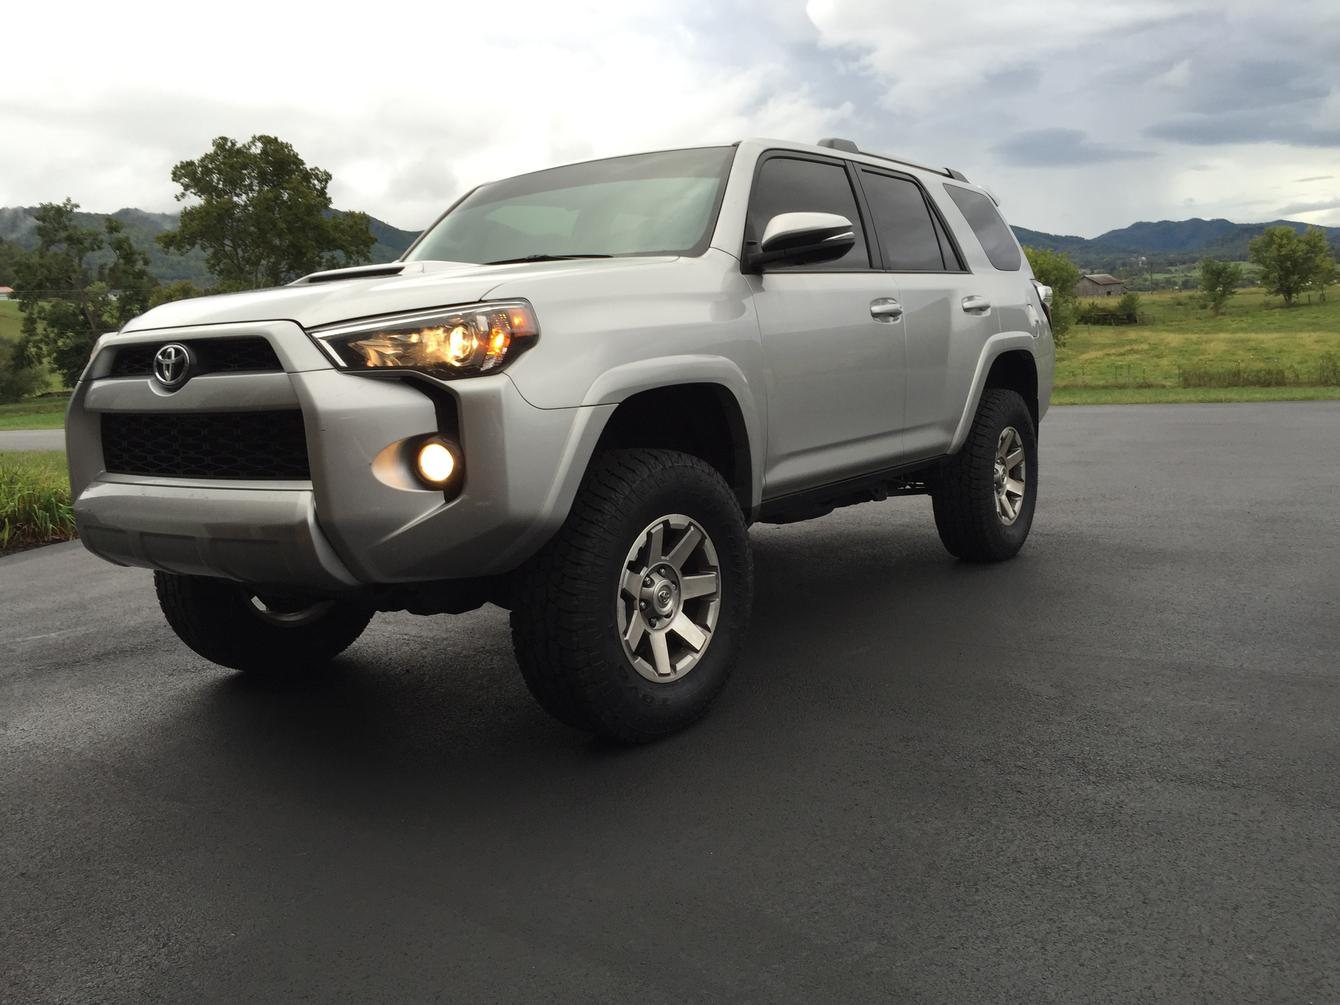 Toyota Toytec 3 Level Kit Selling Stock Wheels And Tires Toyota 4runner Forum Largest 4runner Forum